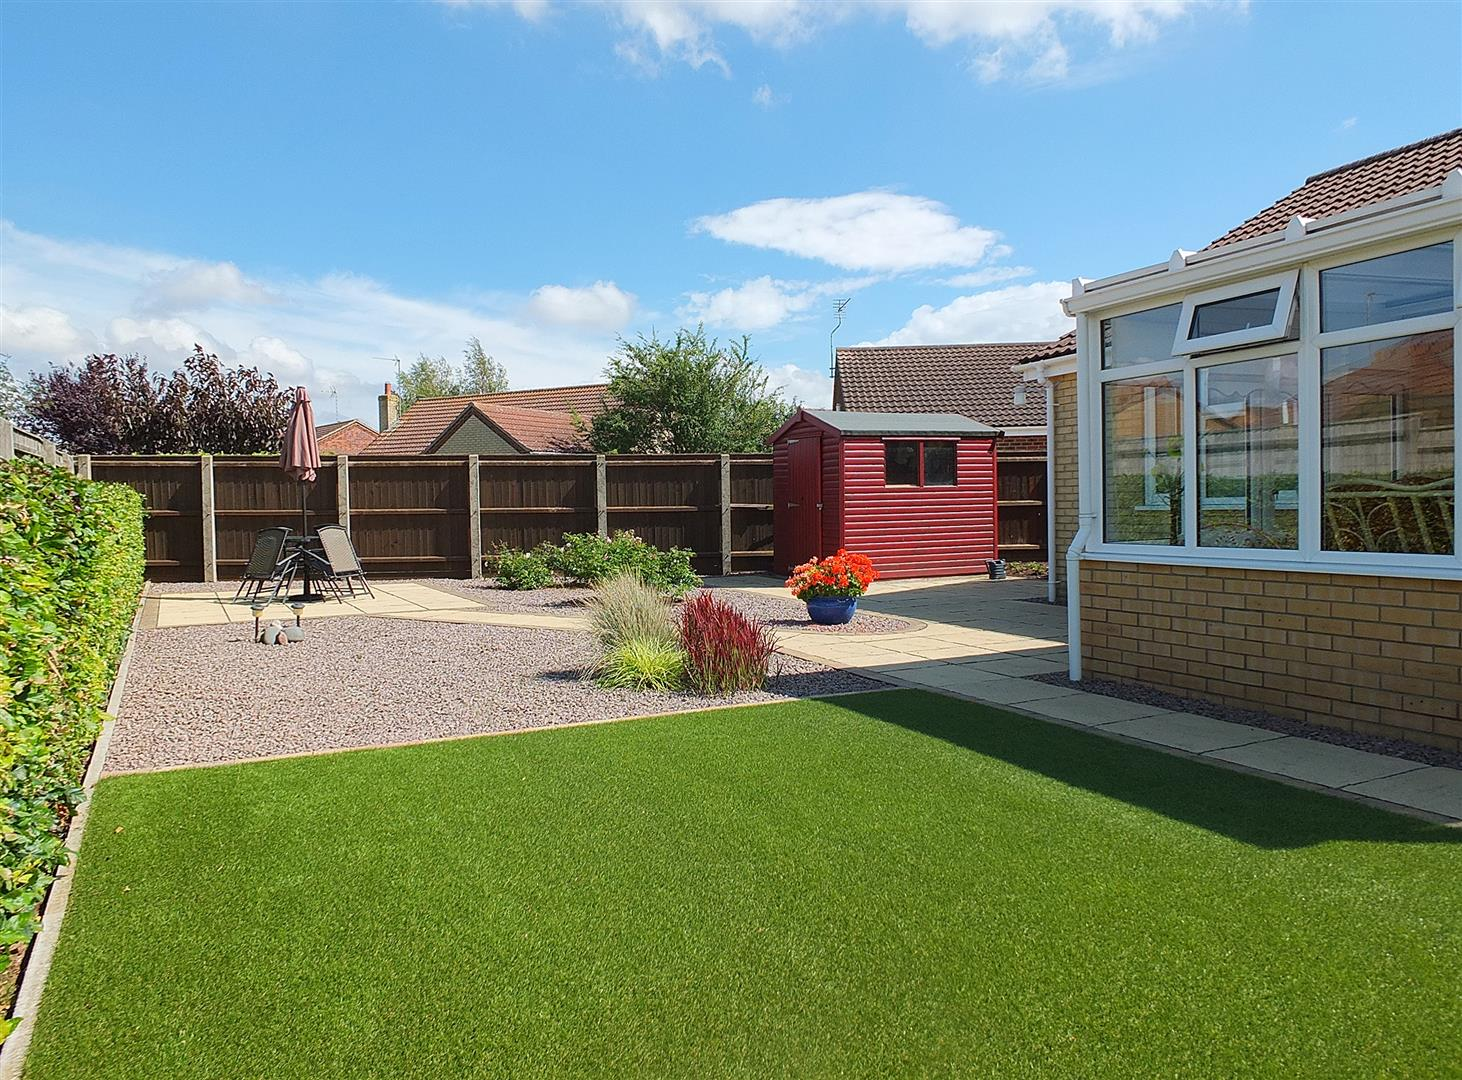 3 bed detached bungalow for sale in Long Sutton Spalding, PE12 9FT  - Property Image 15